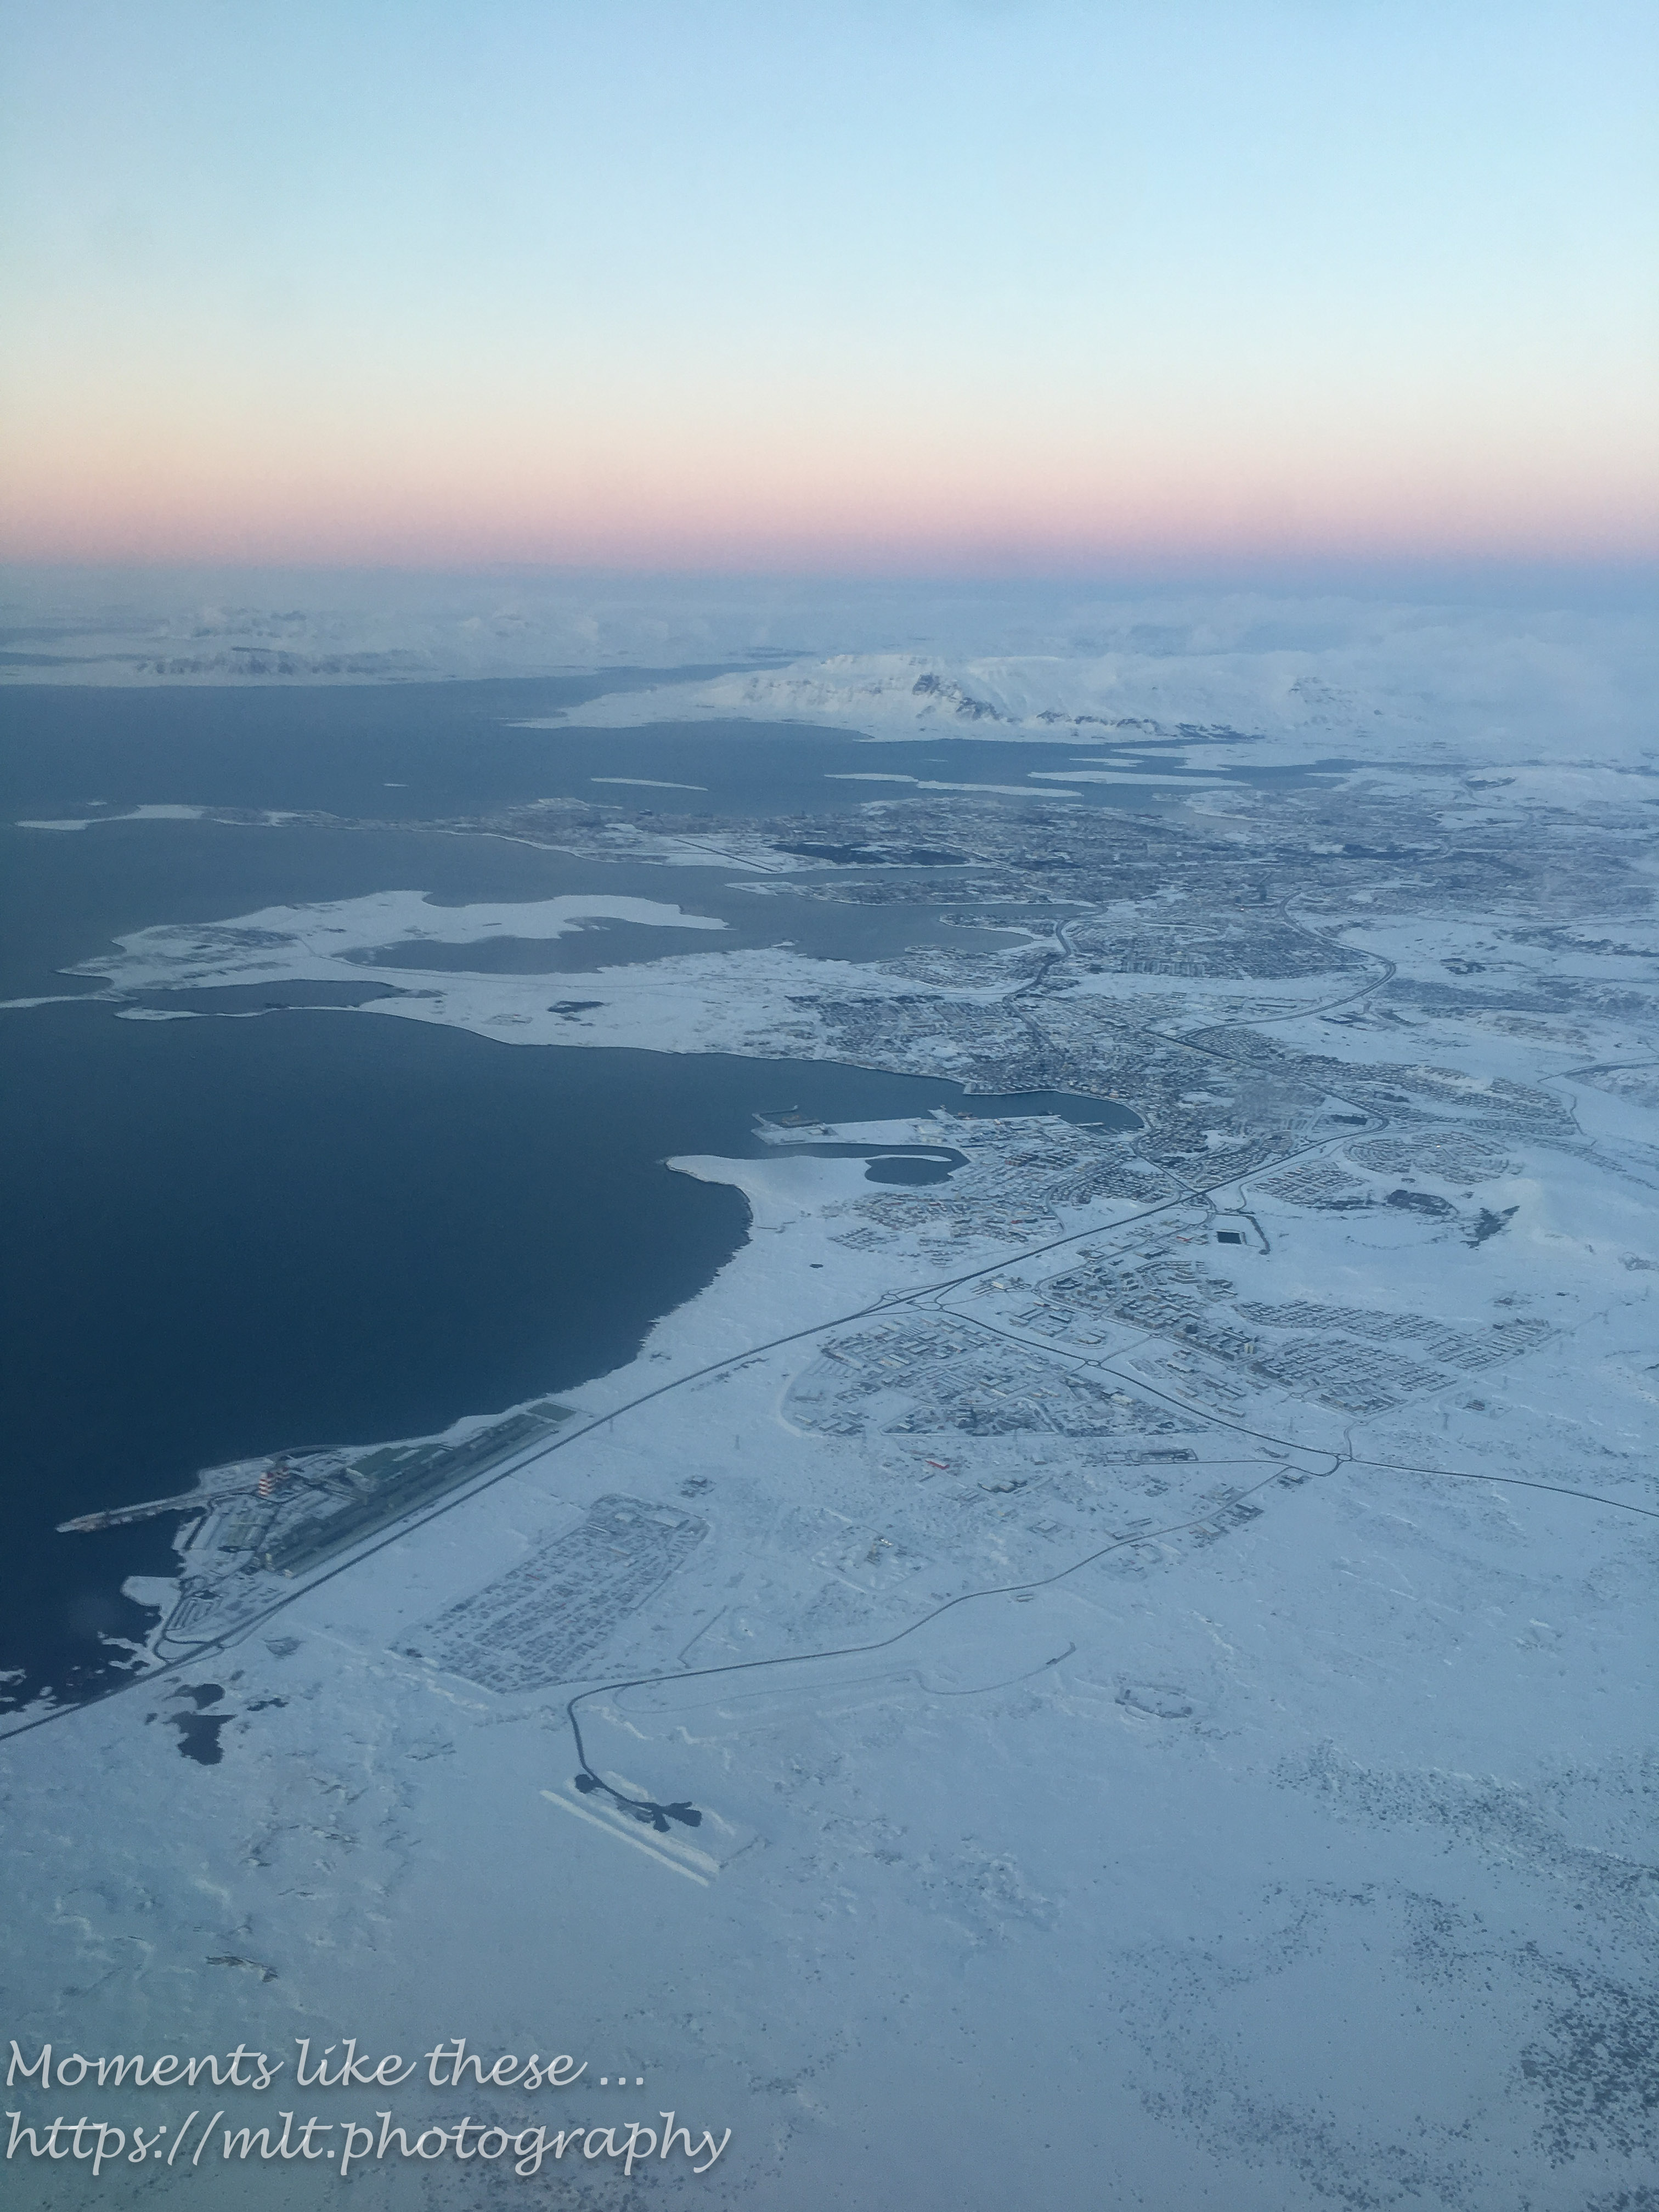 Reykjavik from the air